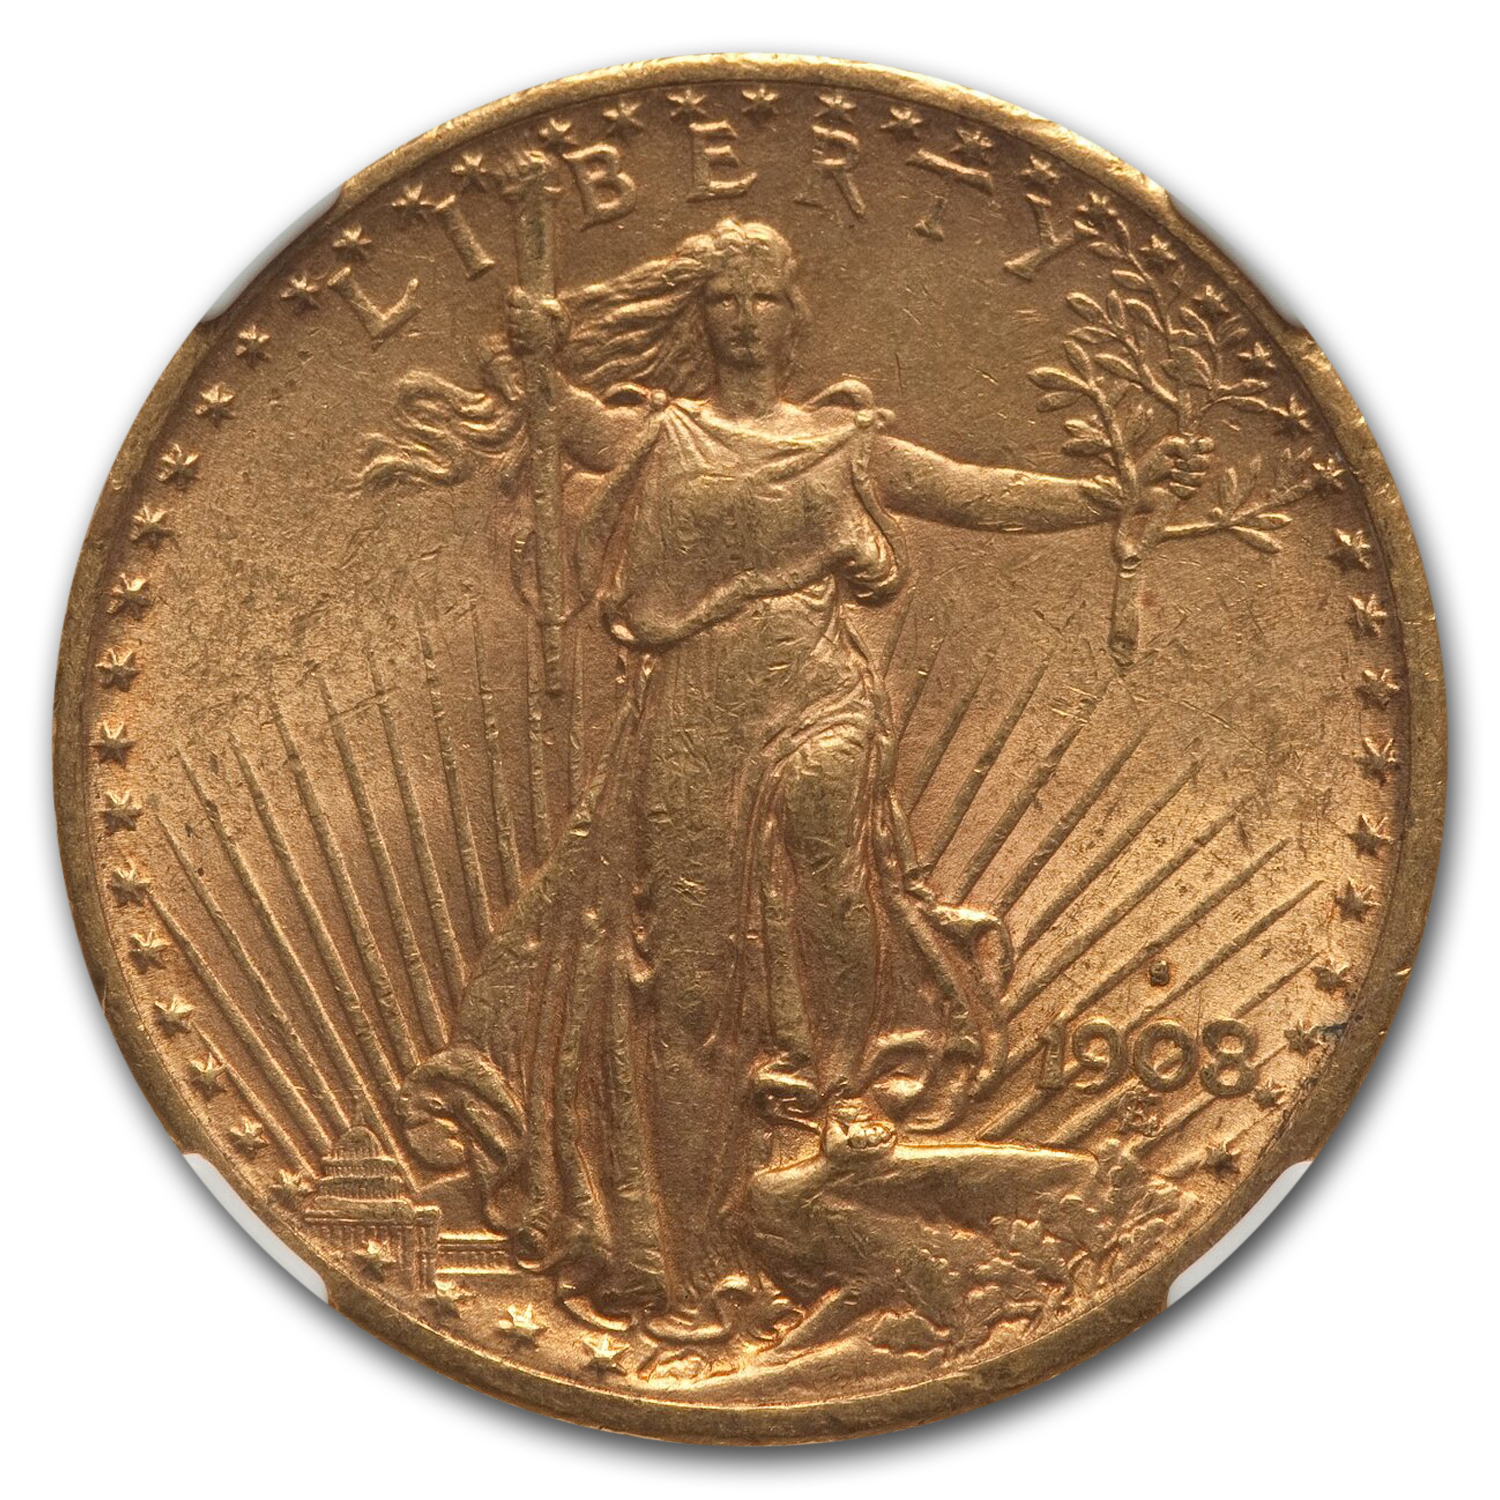 1908-S $20 St. Gaudens Gold Double Eagle - MS-61 NGC